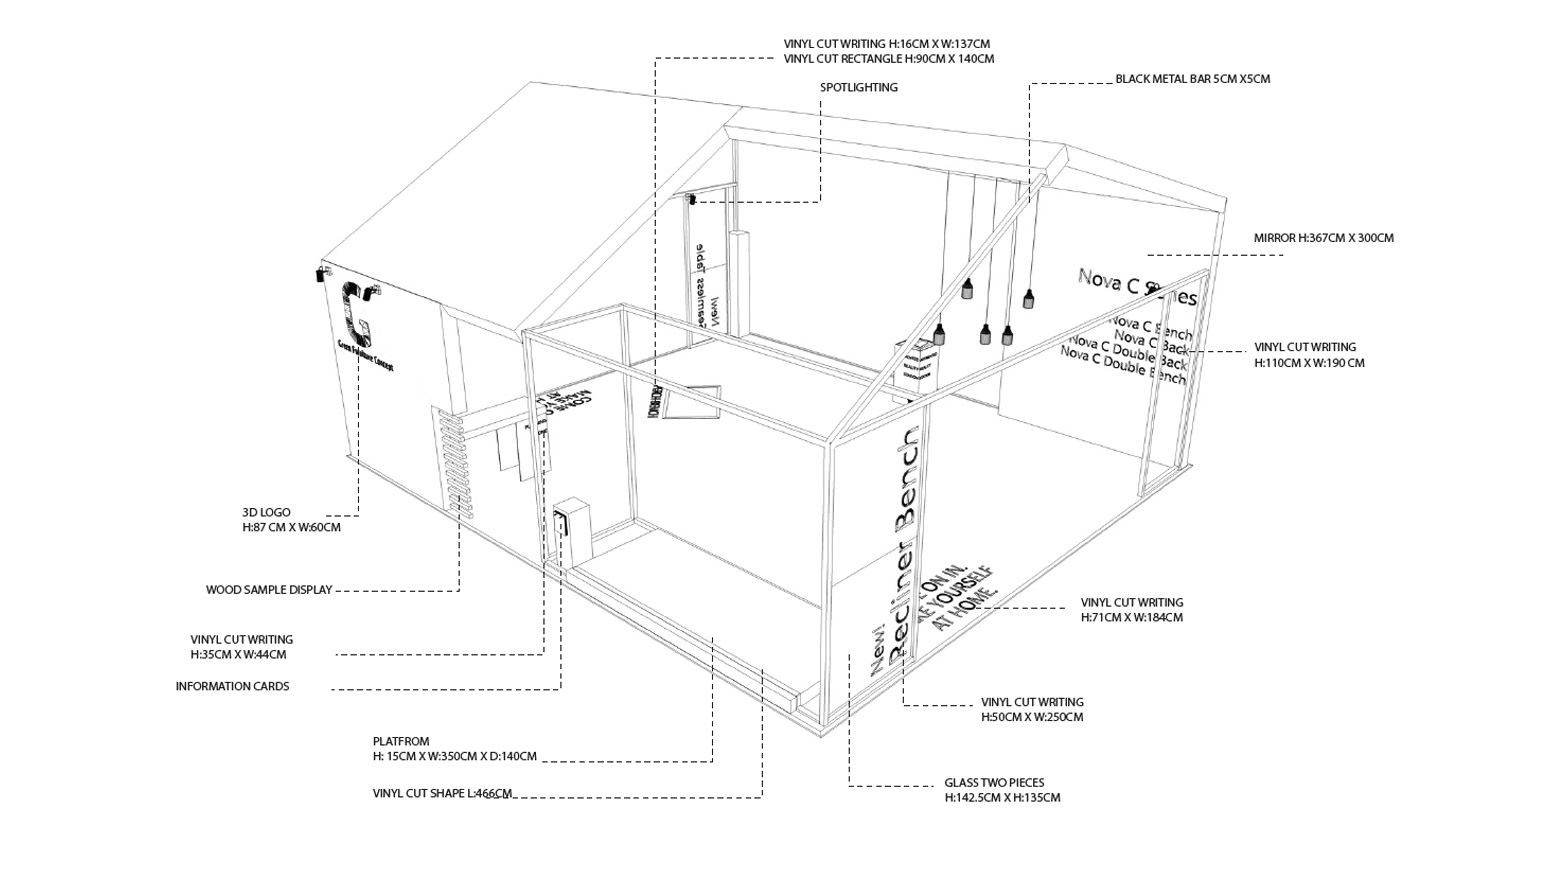 Exhibition Stand Design tech drawings